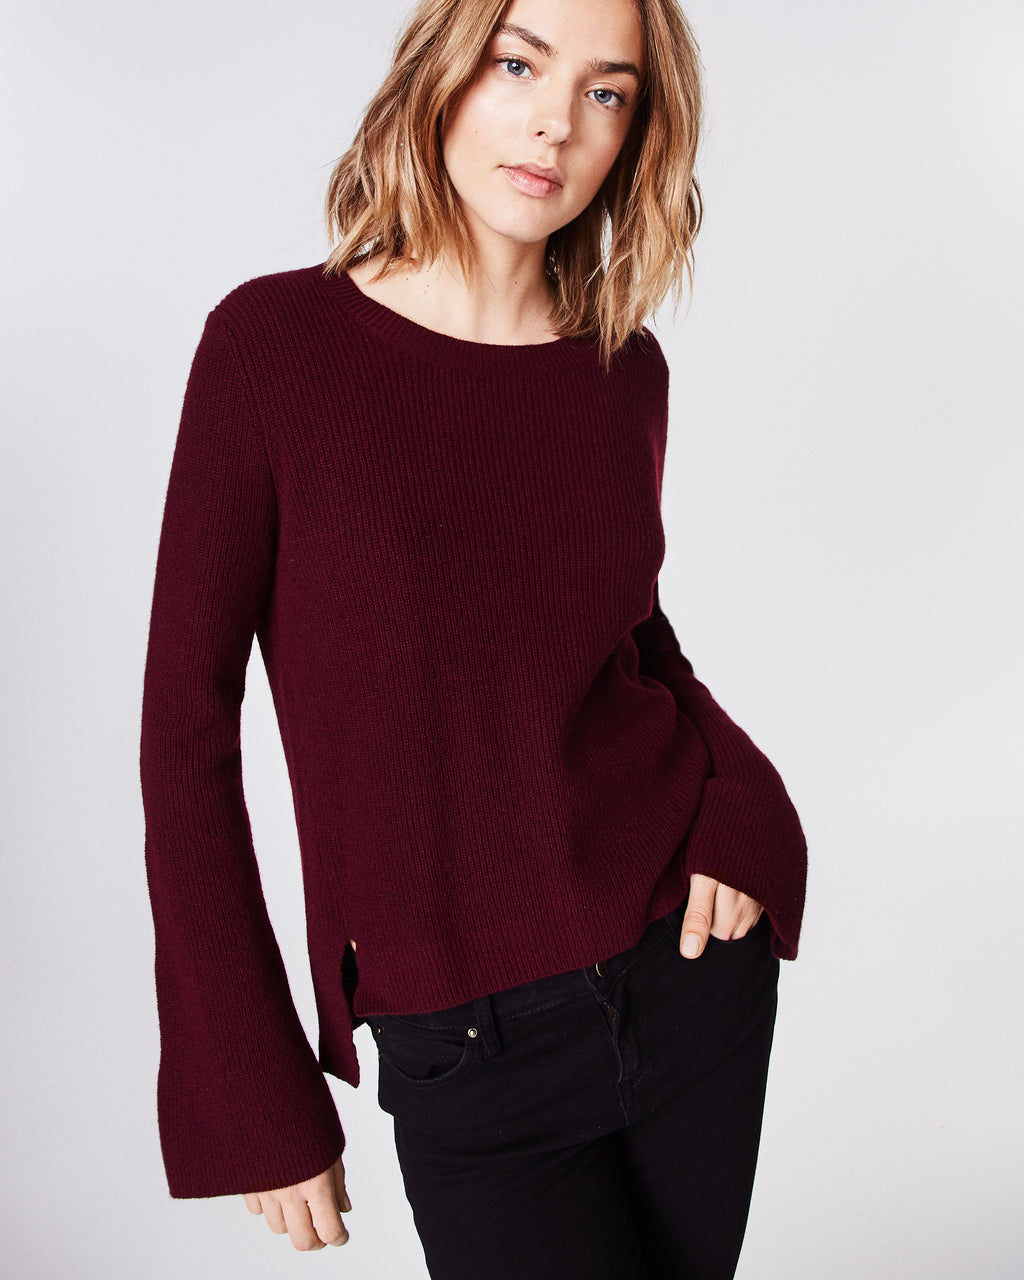 BN10094 - CASHMERE BELL SLEEVE SWEATER - tops - knitwear - This cashmere sweater features a rounded neckine and statement bell sleeves. Unlined.